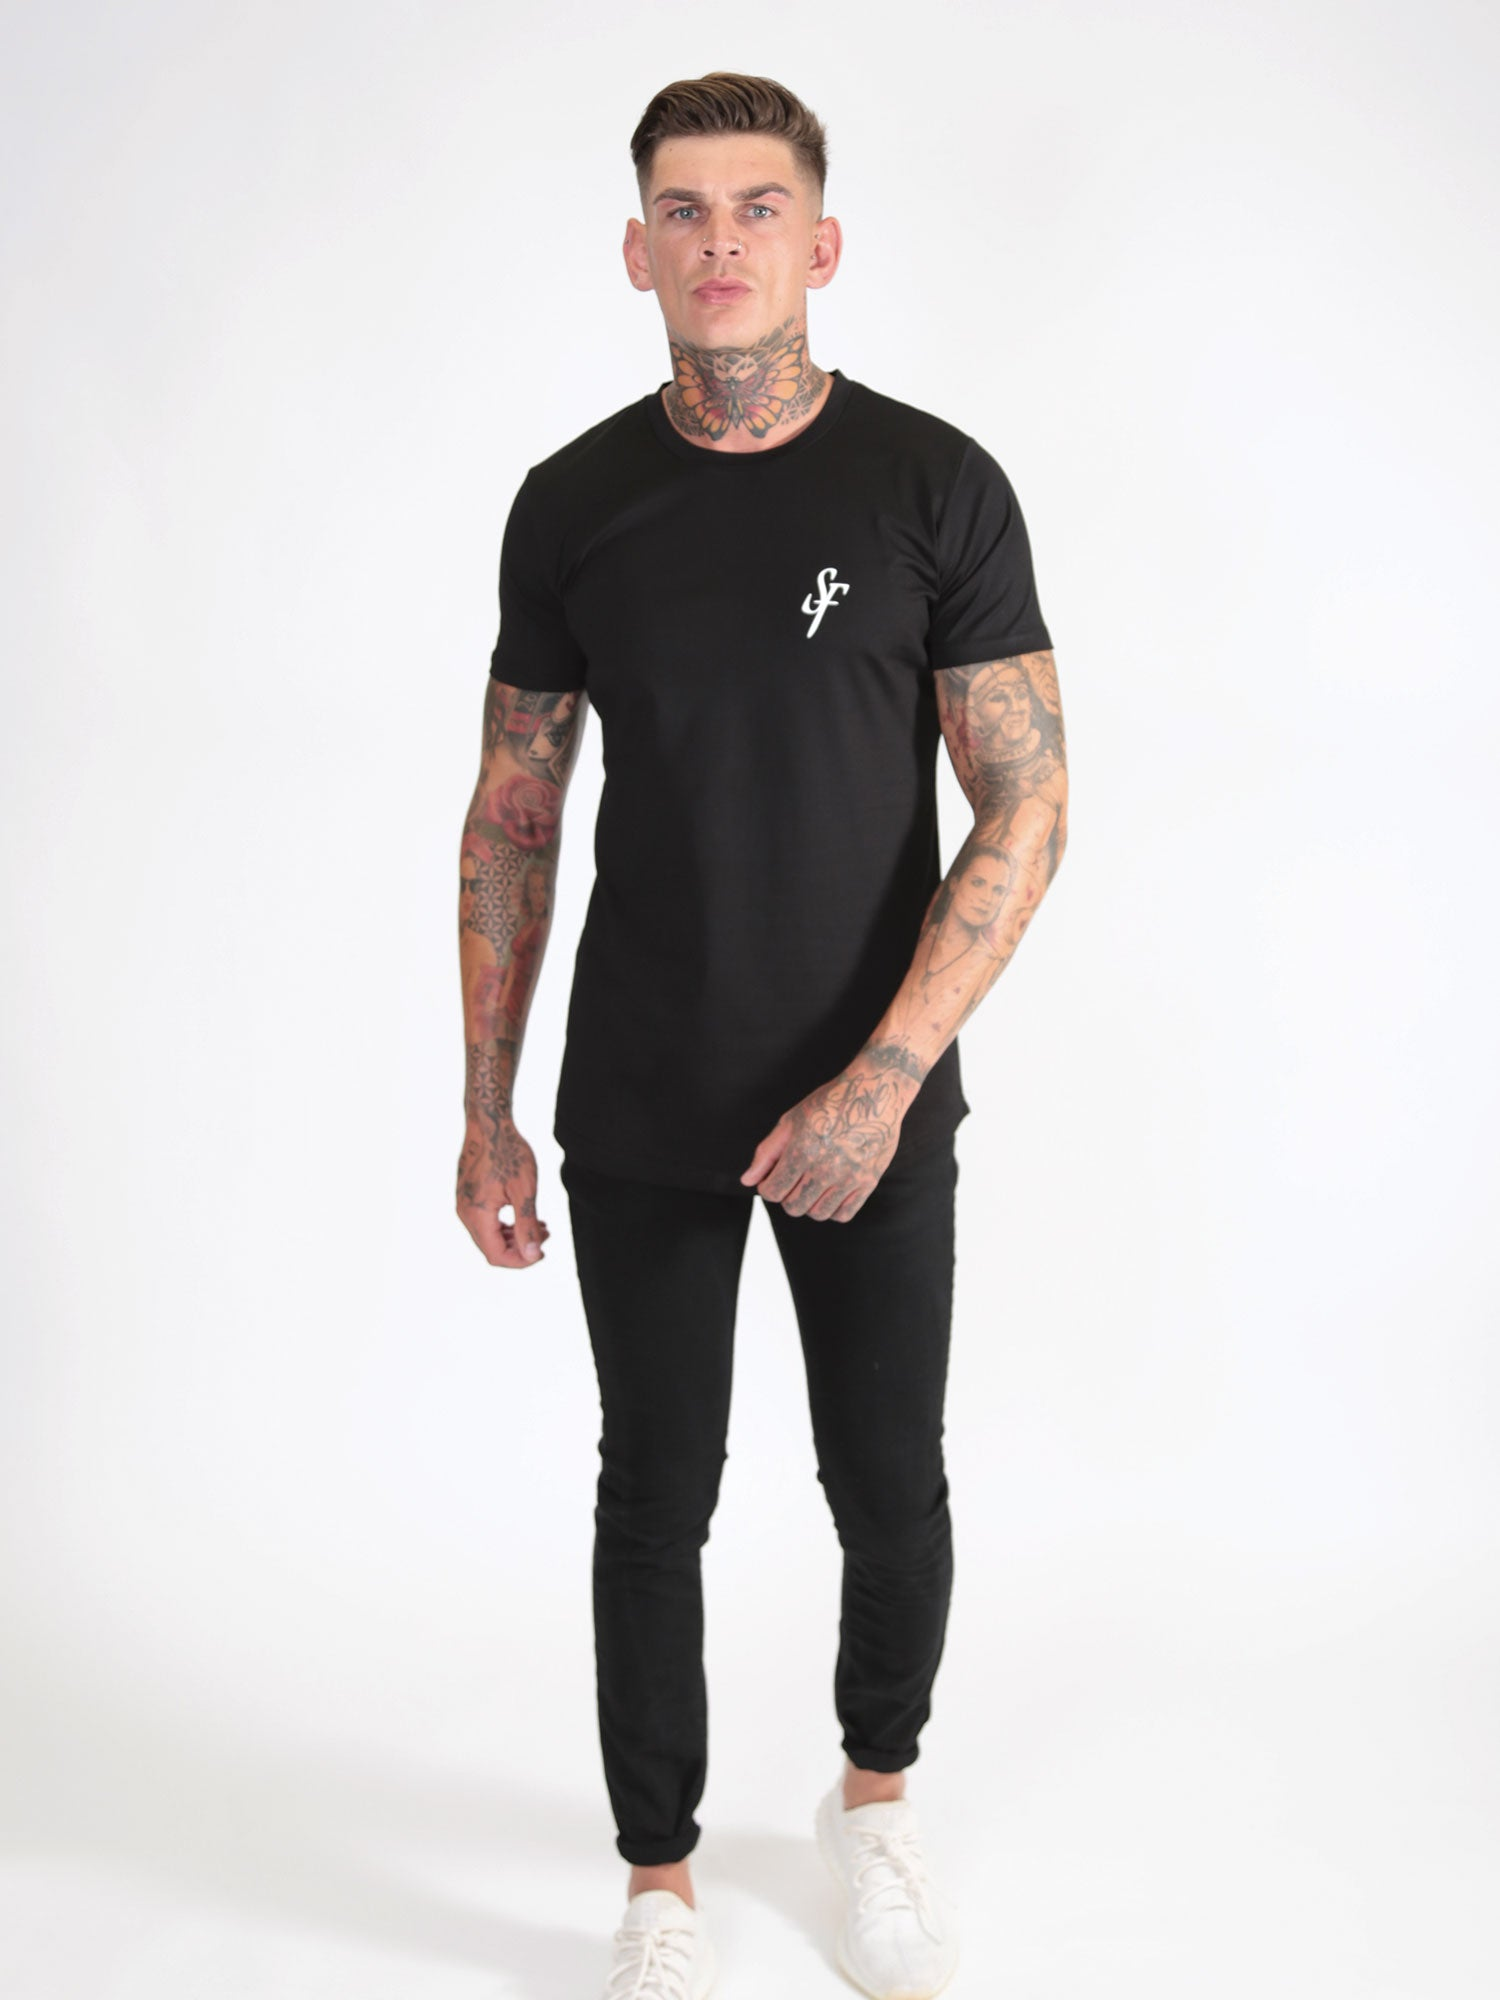 Six Figures 'SF' Logo T-Shirt - Black